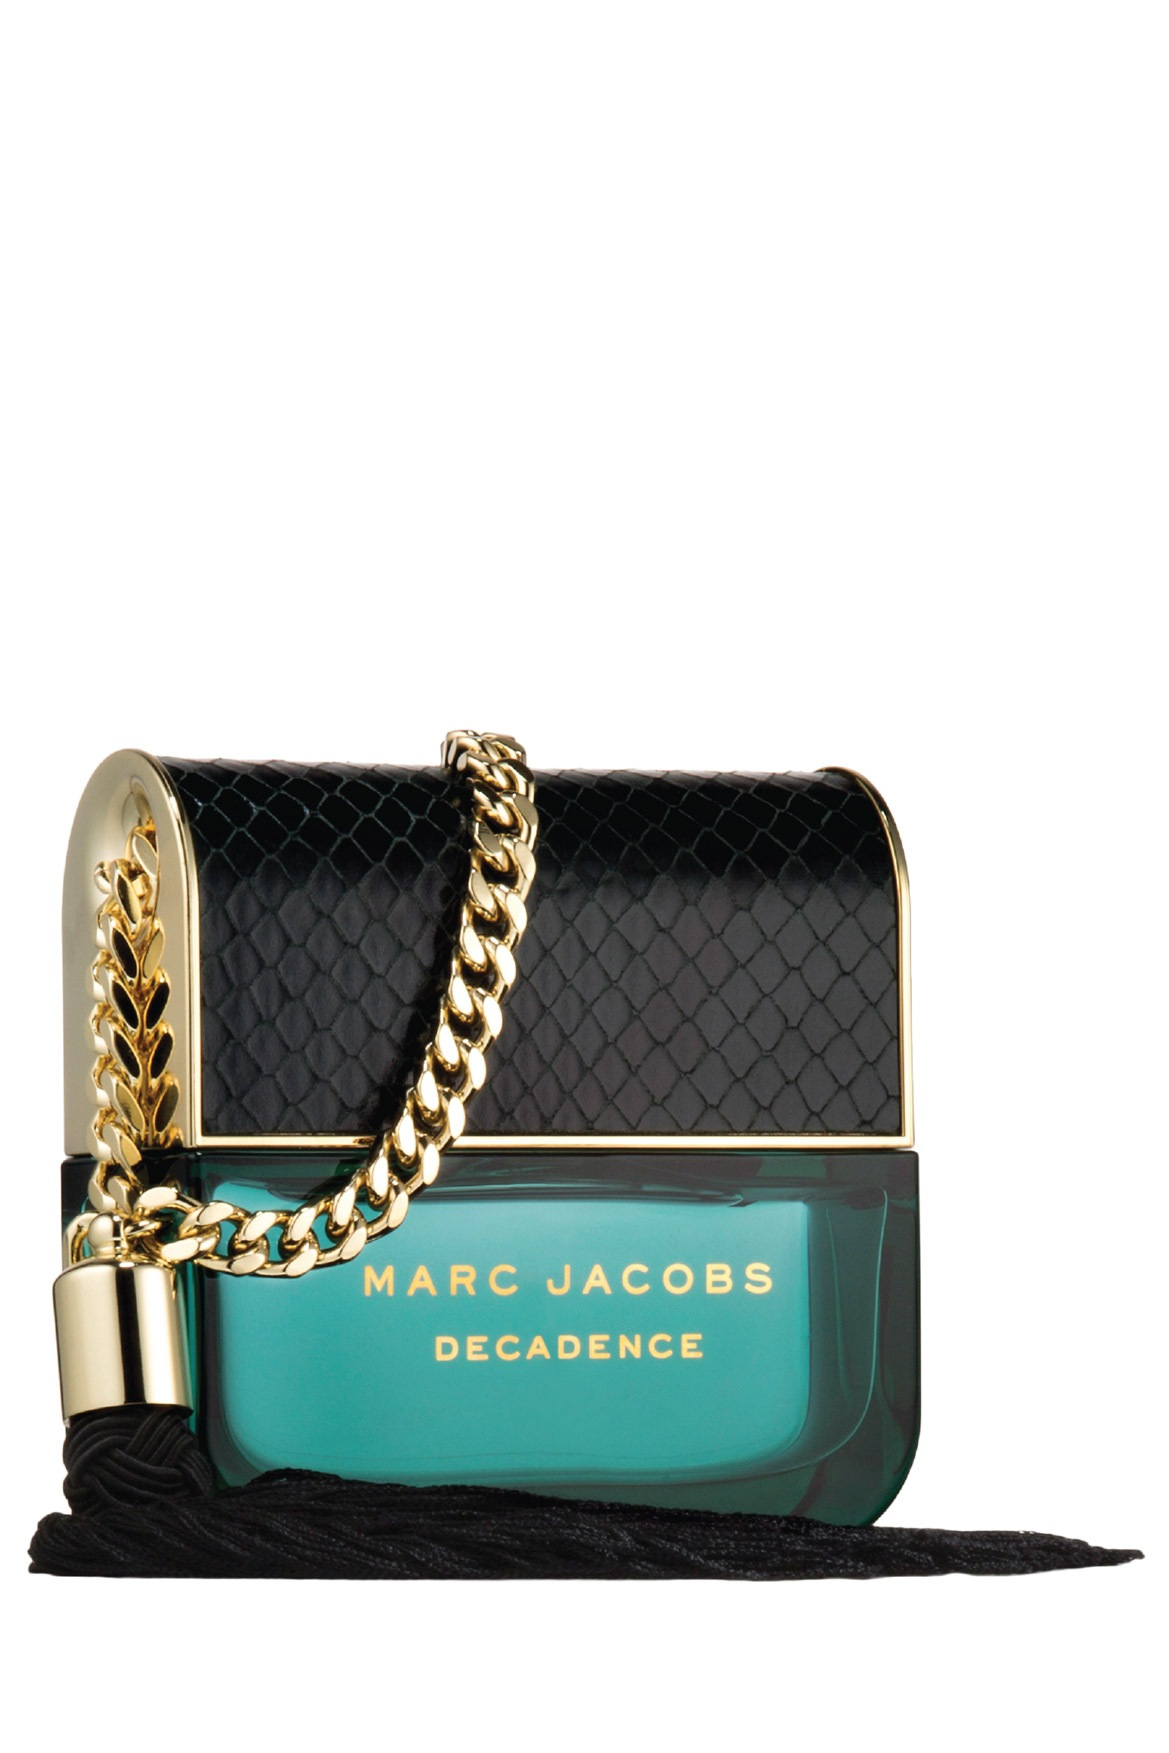 marc jacobs decadence edp myer online. Black Bedroom Furniture Sets. Home Design Ideas